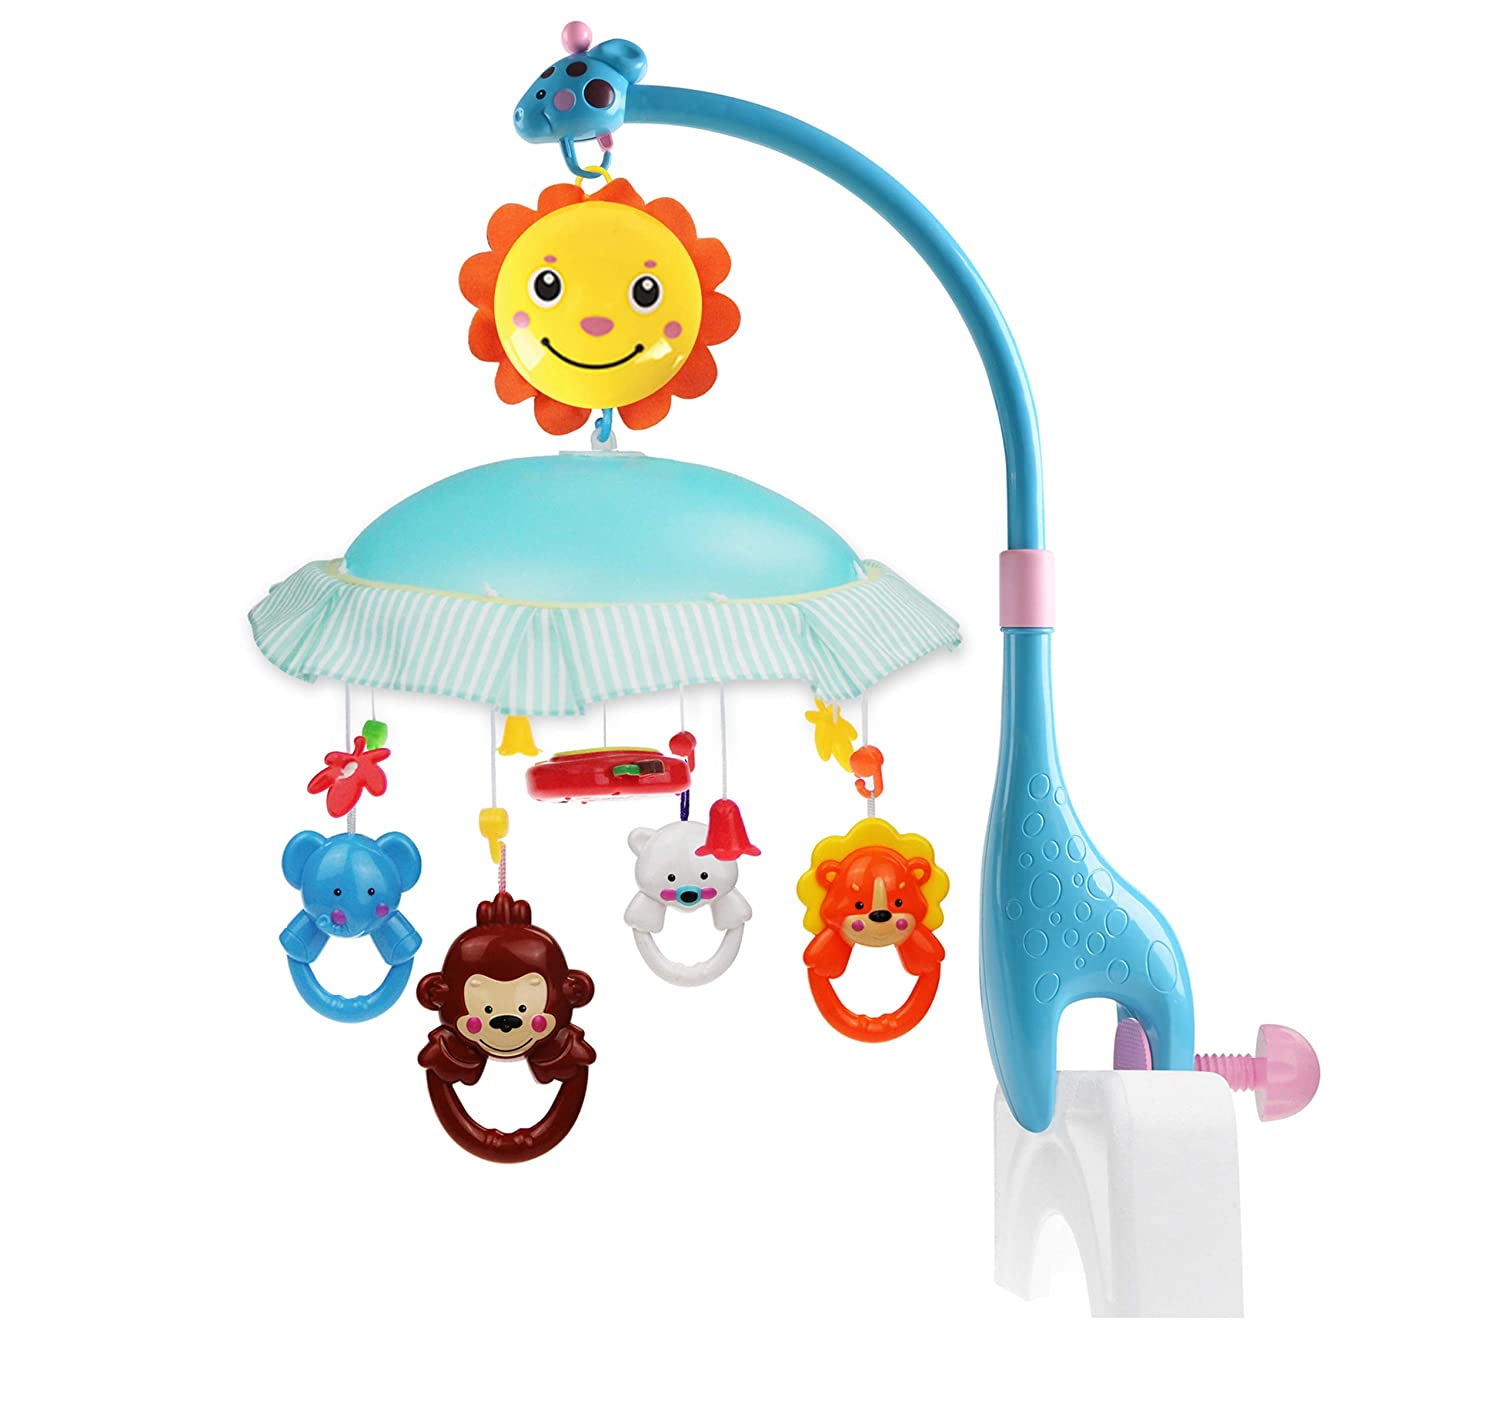 Multifunctional Infant Mobile for Cot,Musical Crib Toys Baby Kids Crib Mobile Bed Bell Sound Toys Rotating Animals Soothers Little Bambino Sunny Gary Giraffe